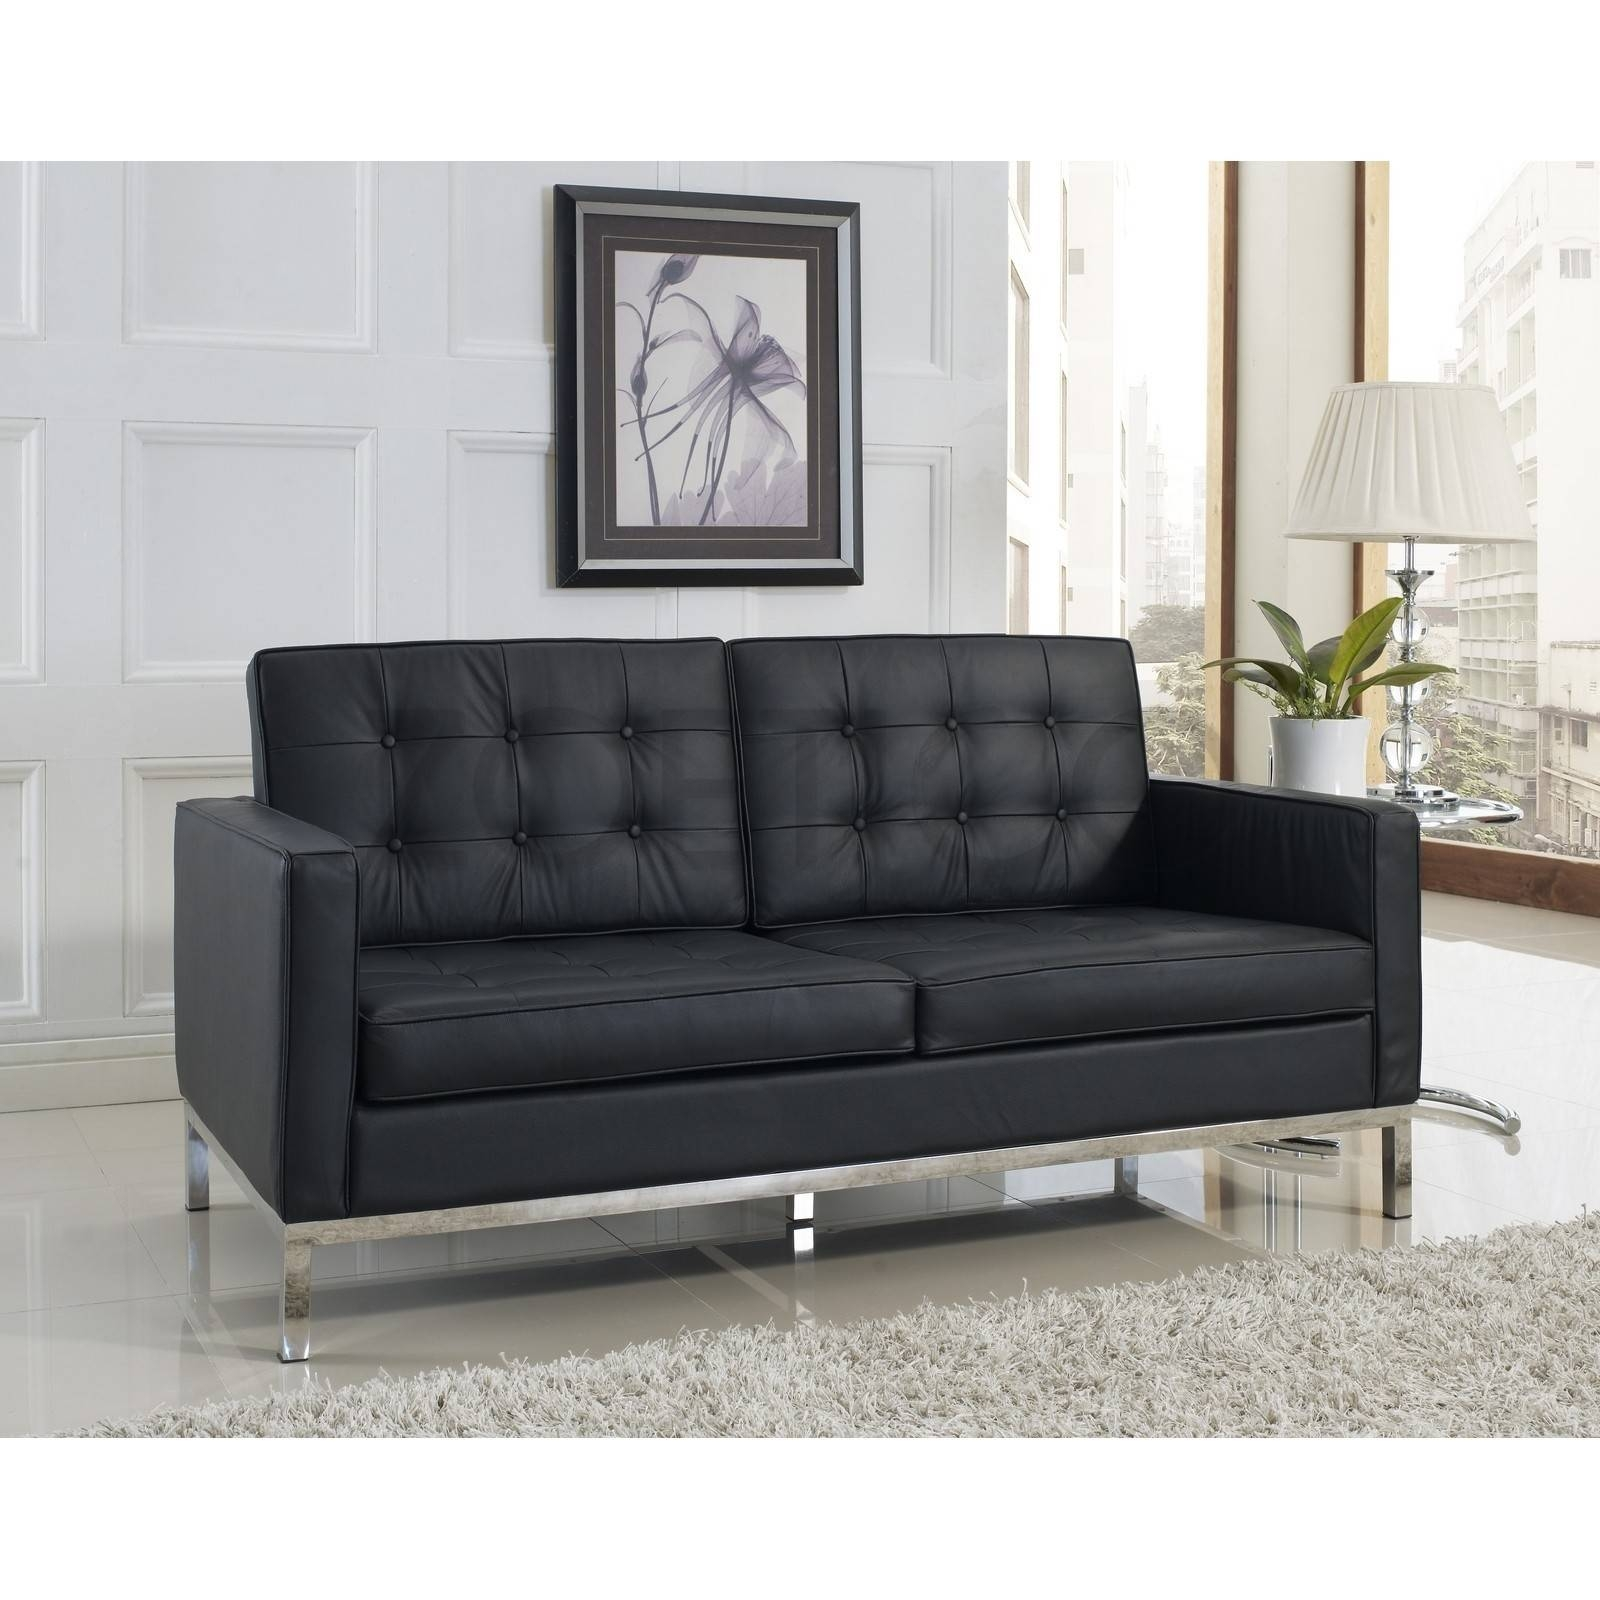 Florence Knoll Style Loveseat In Leather (Multiple Colors intended for Florence Knoll Leather Sofas (Image 12 of 25)